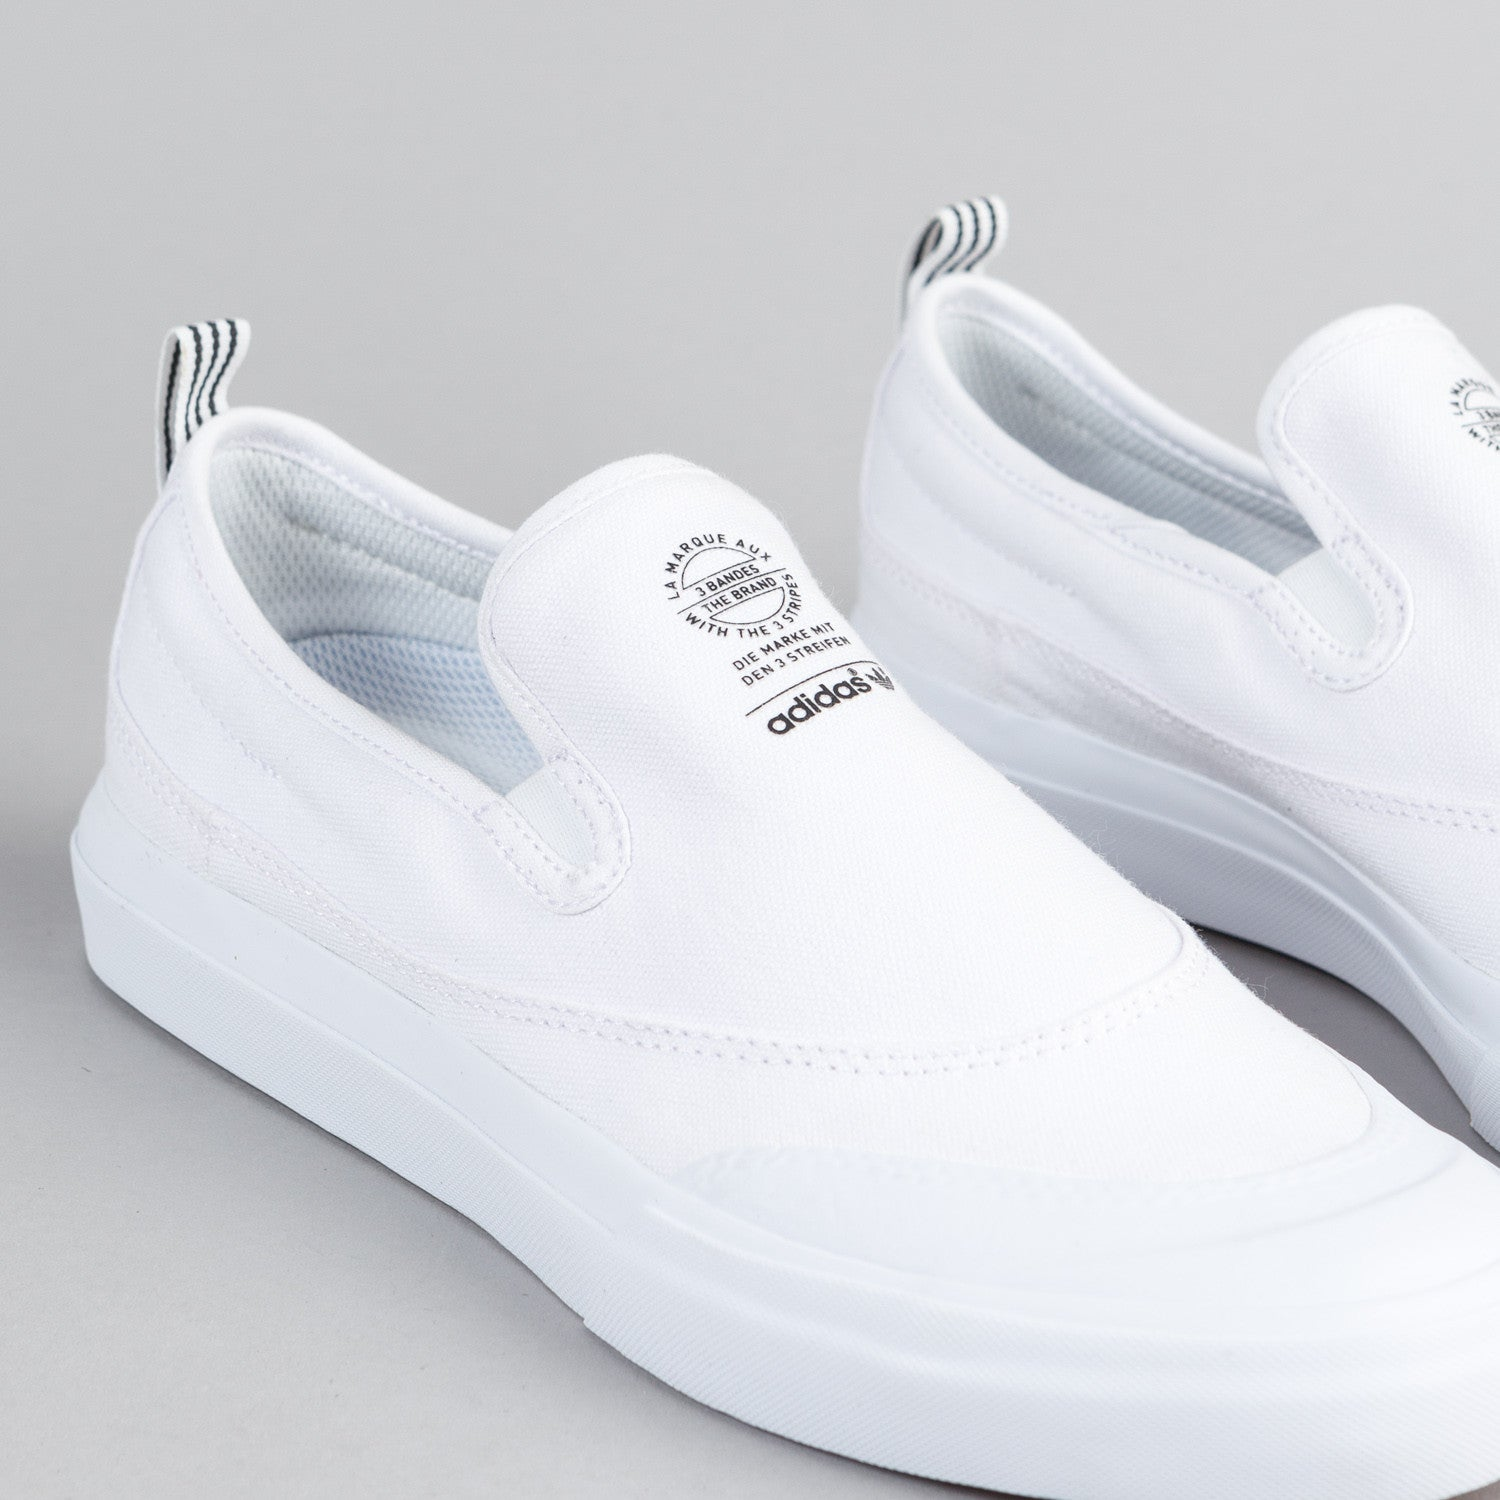 Adidas Matchcourt Slip On Shoes - FTW White / FTW White / FTW White